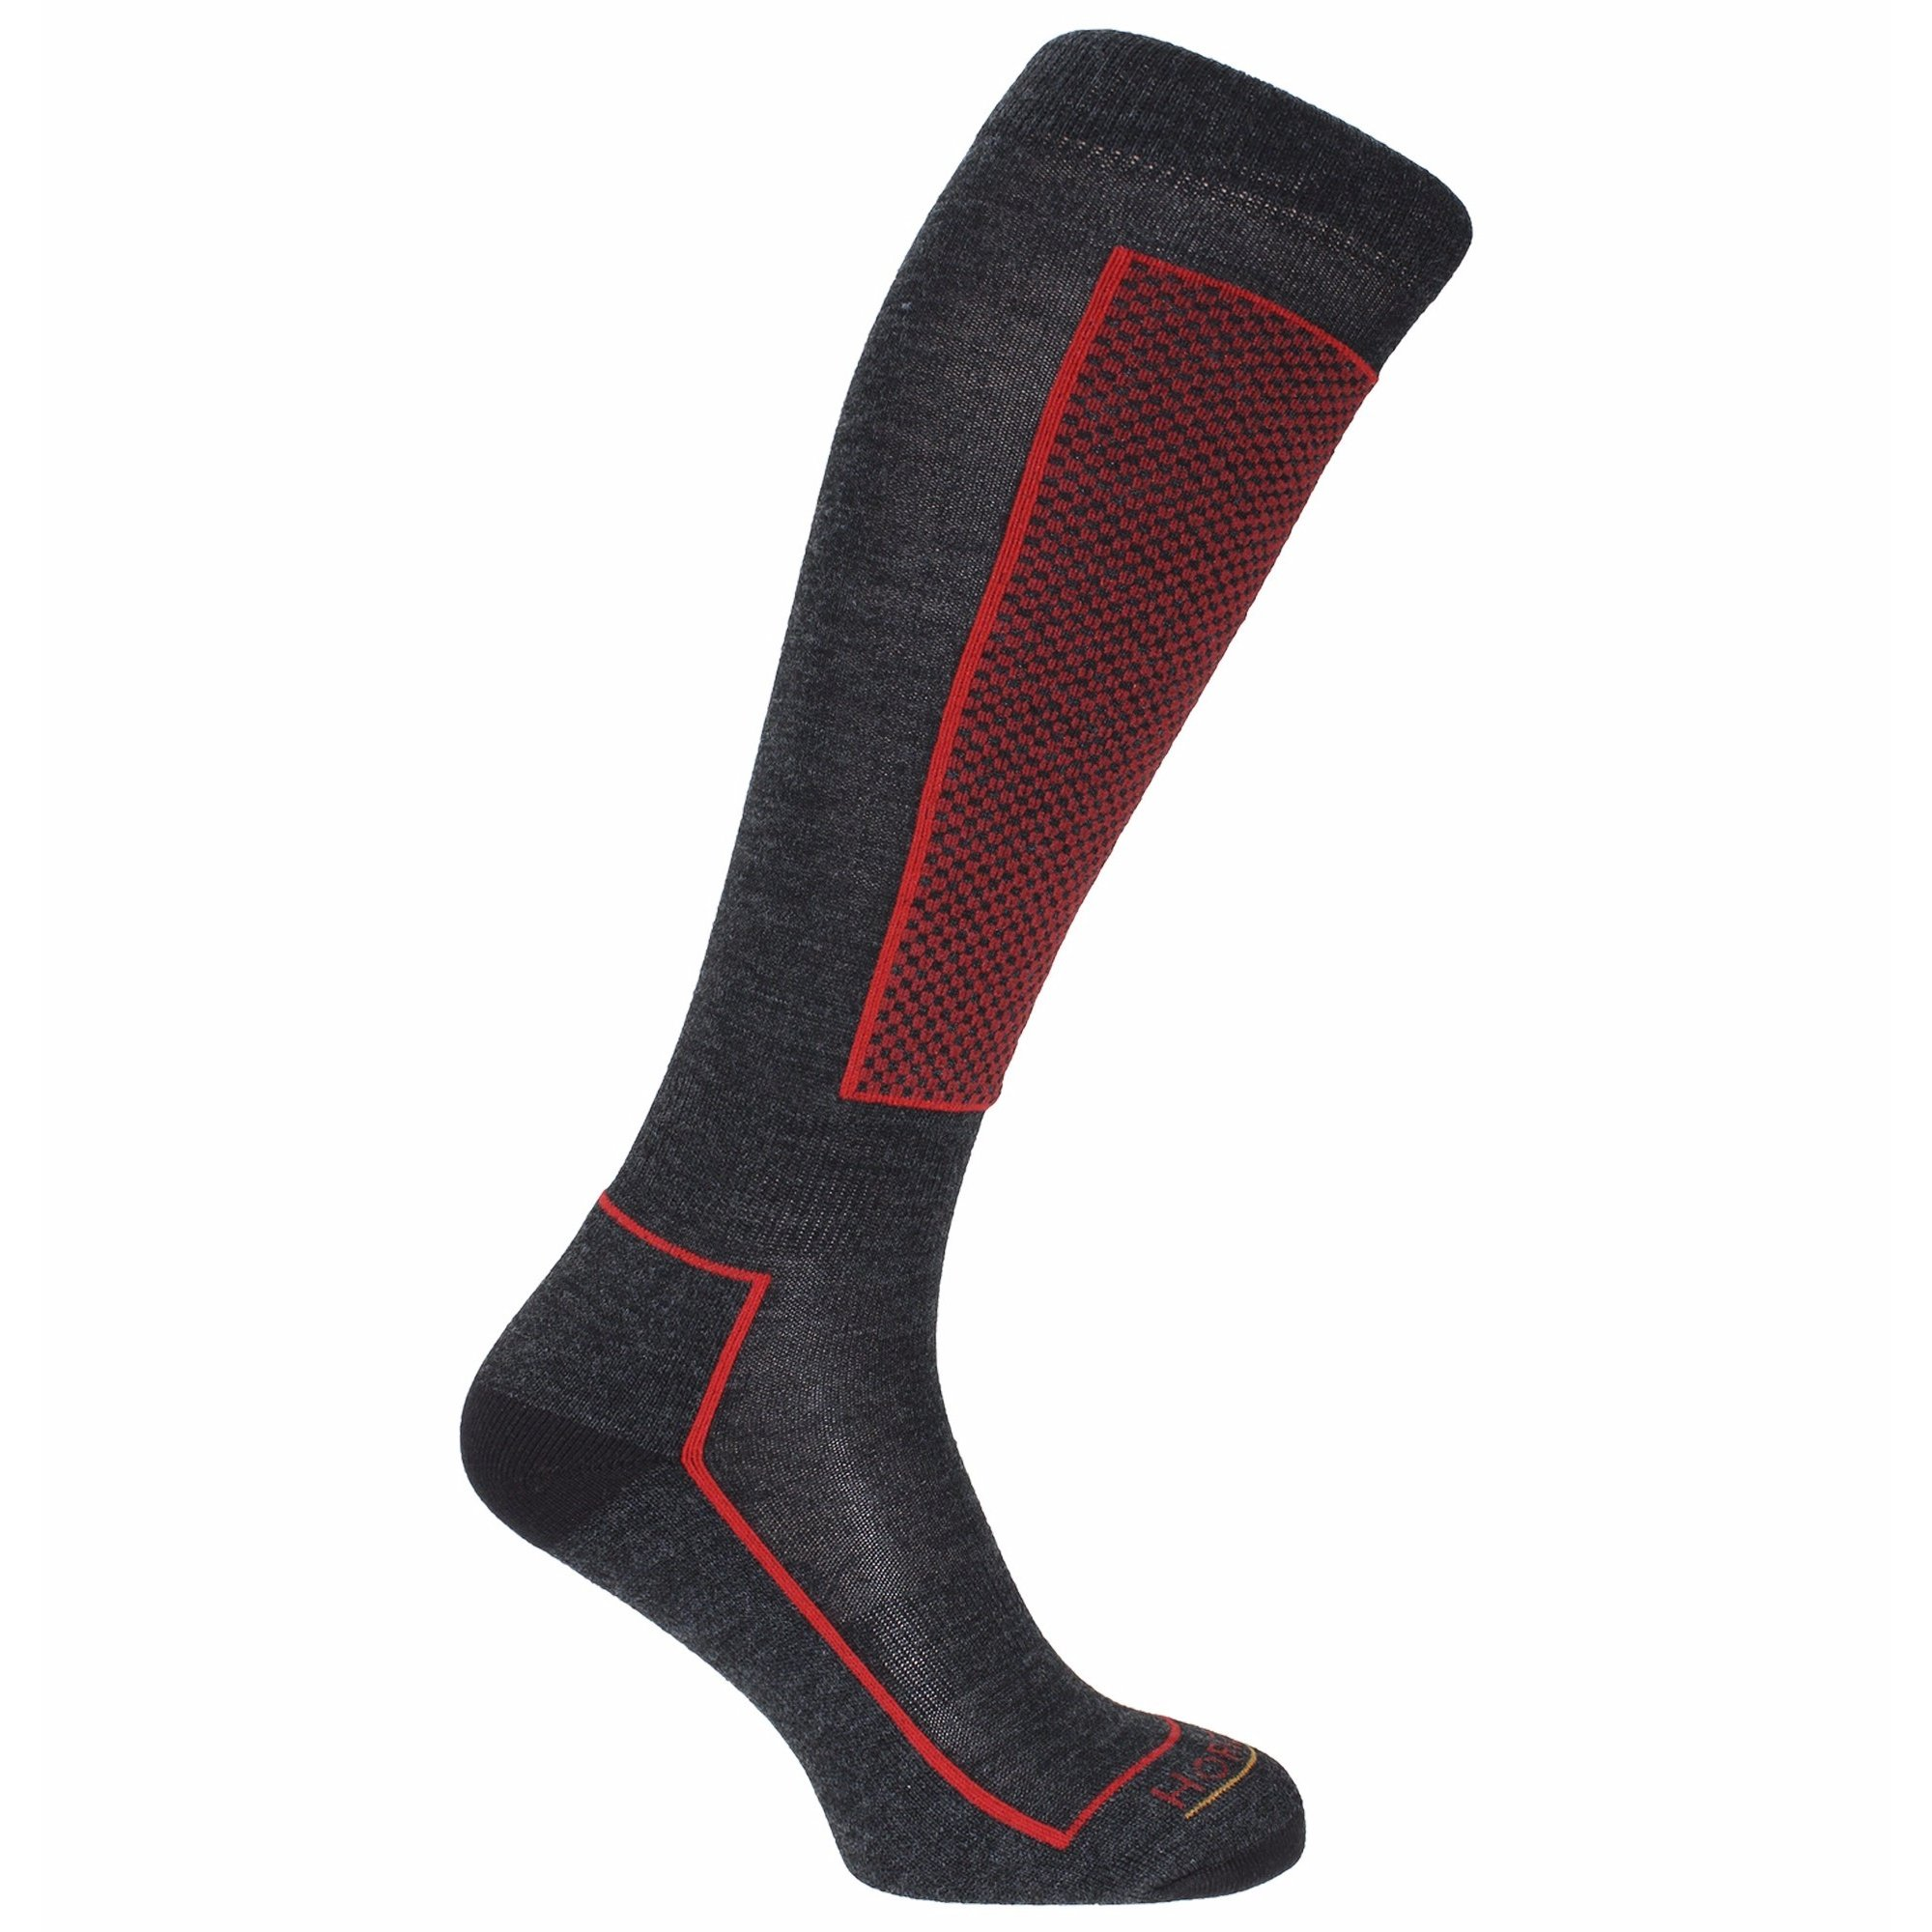 Horizon Unisex Slalom Technical Ski Socks (4.5-7.5 US) (Charcoal/Red)